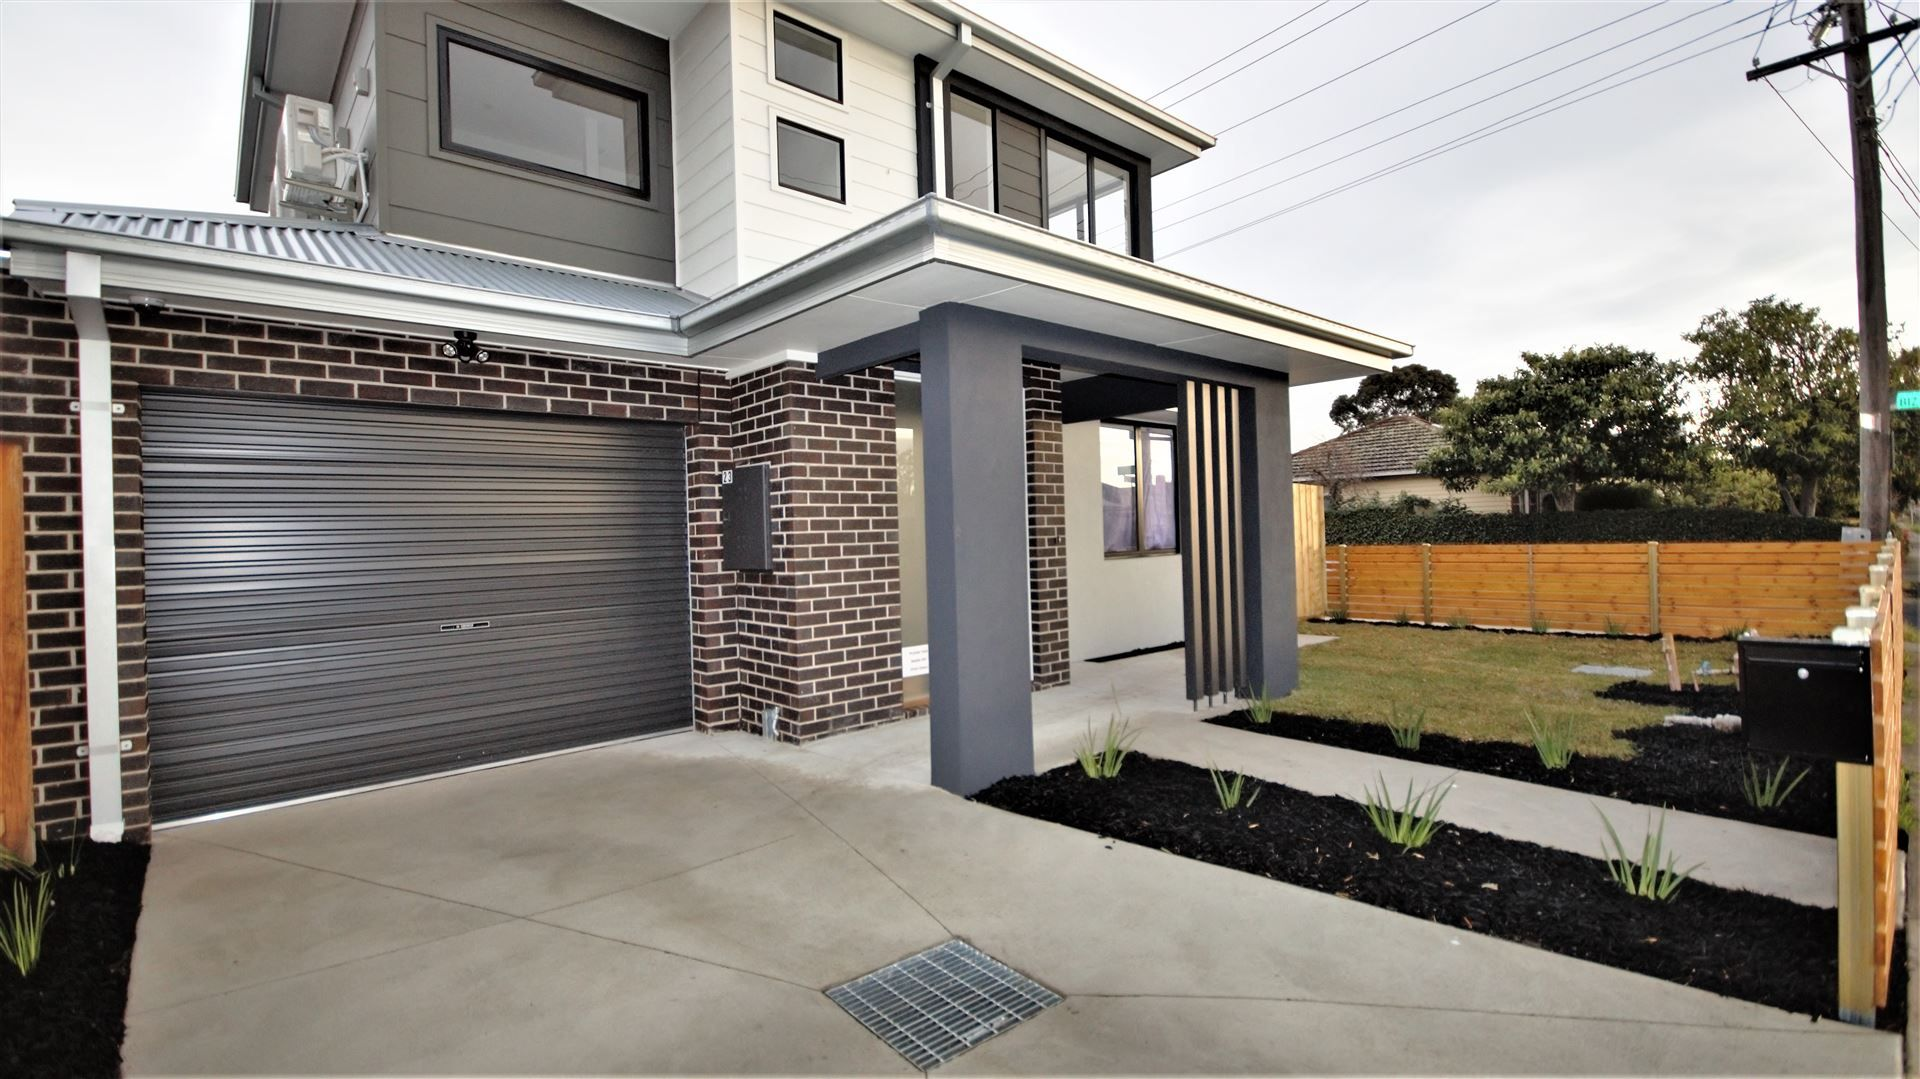 23 Fontein St, West Footscray VIC 3012, Image 1